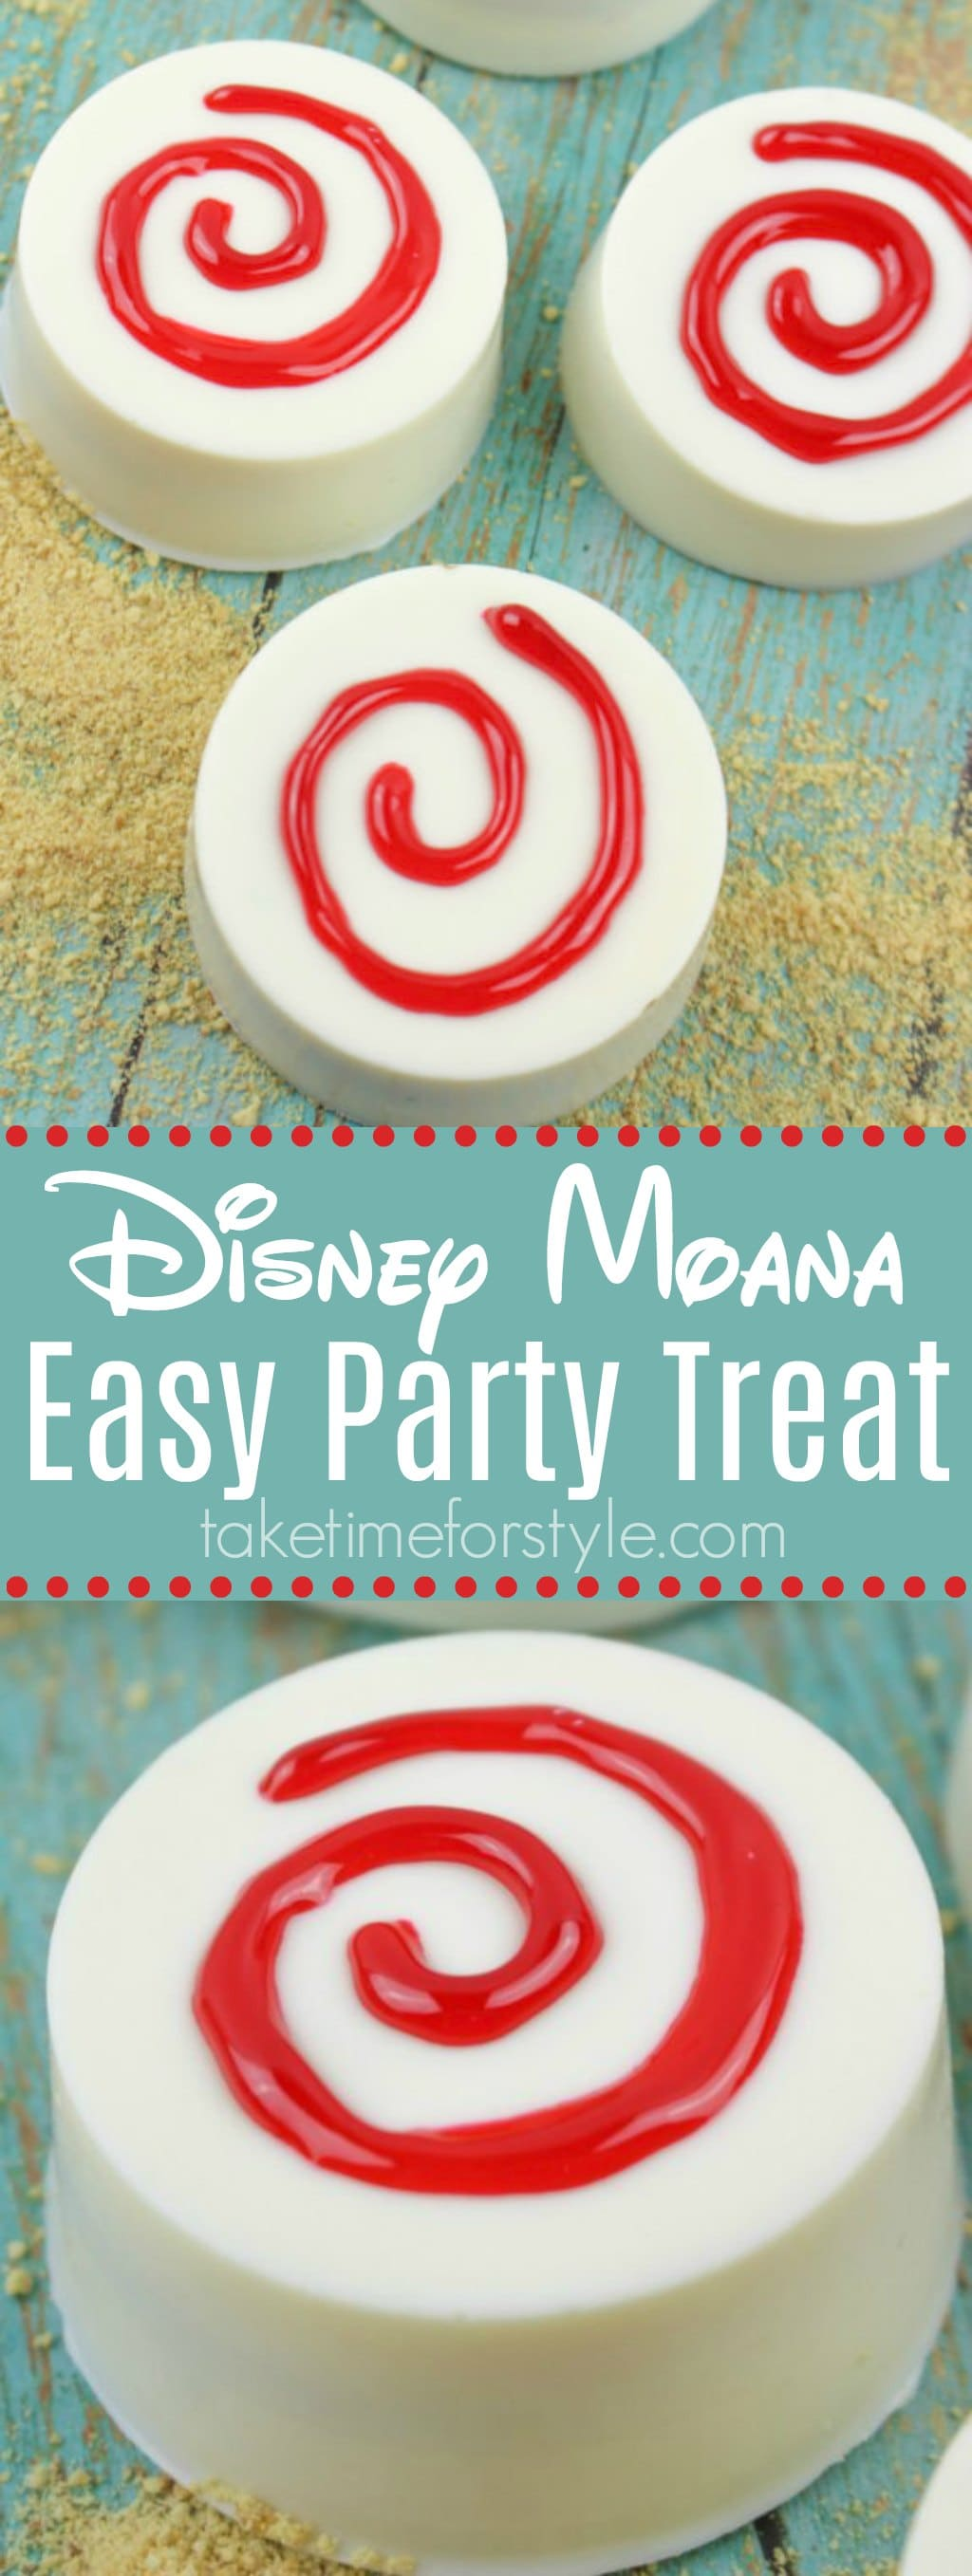 Disney Moana Easy Party Treat - white chocolate covered oreos with red swirl on a green background.